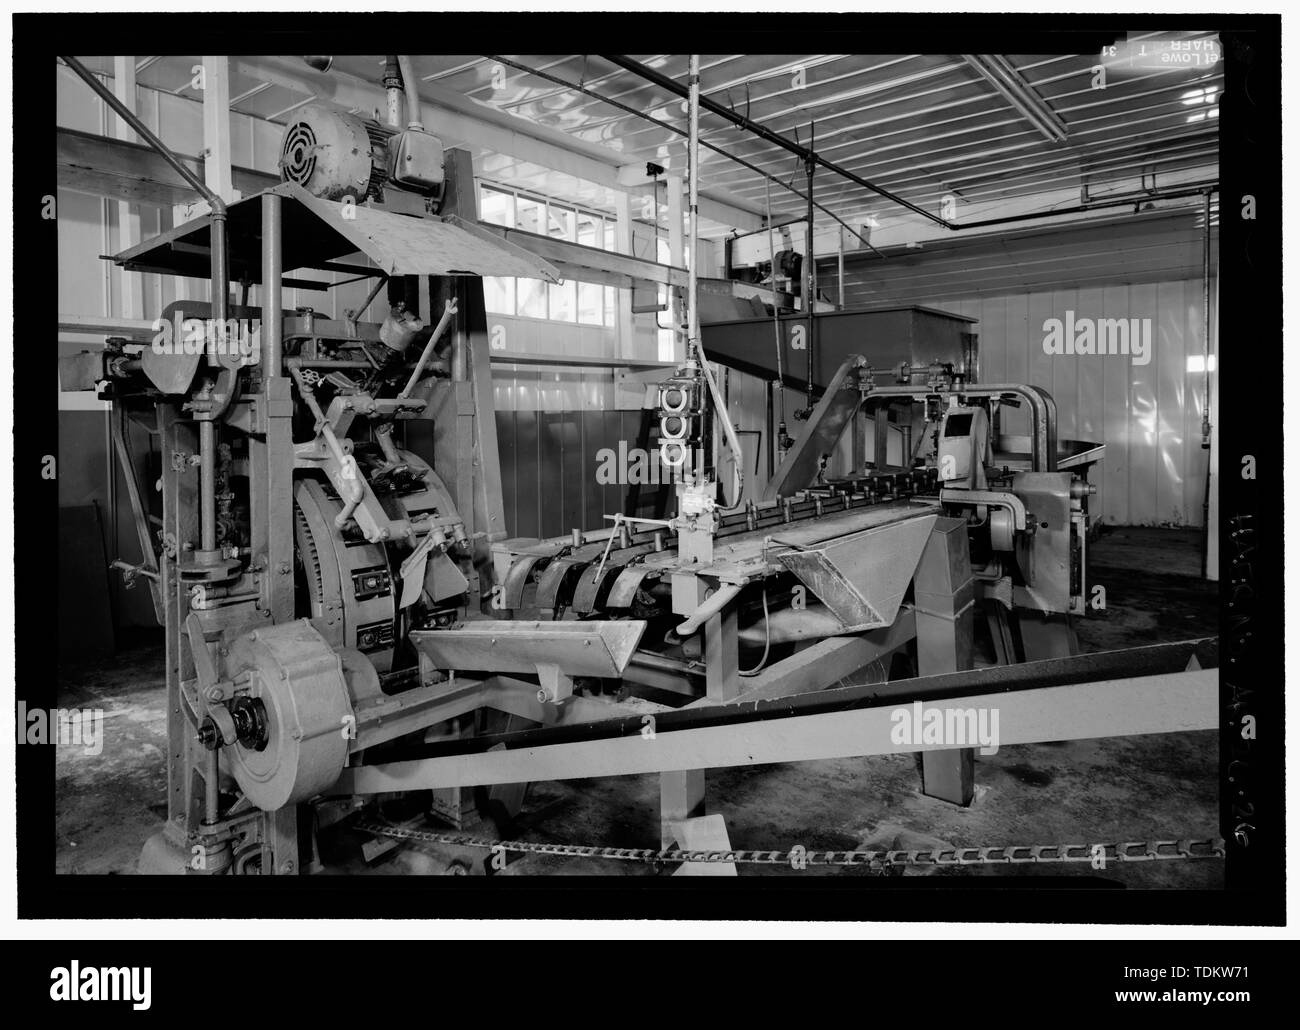 Oblique shot of chink; looking at chain fish conveyor and feed through into machine - Kake Salmon Cannery, 540 Keku Road, Kake, Wrangell-Petersburg Census Area, AK - Stock Image